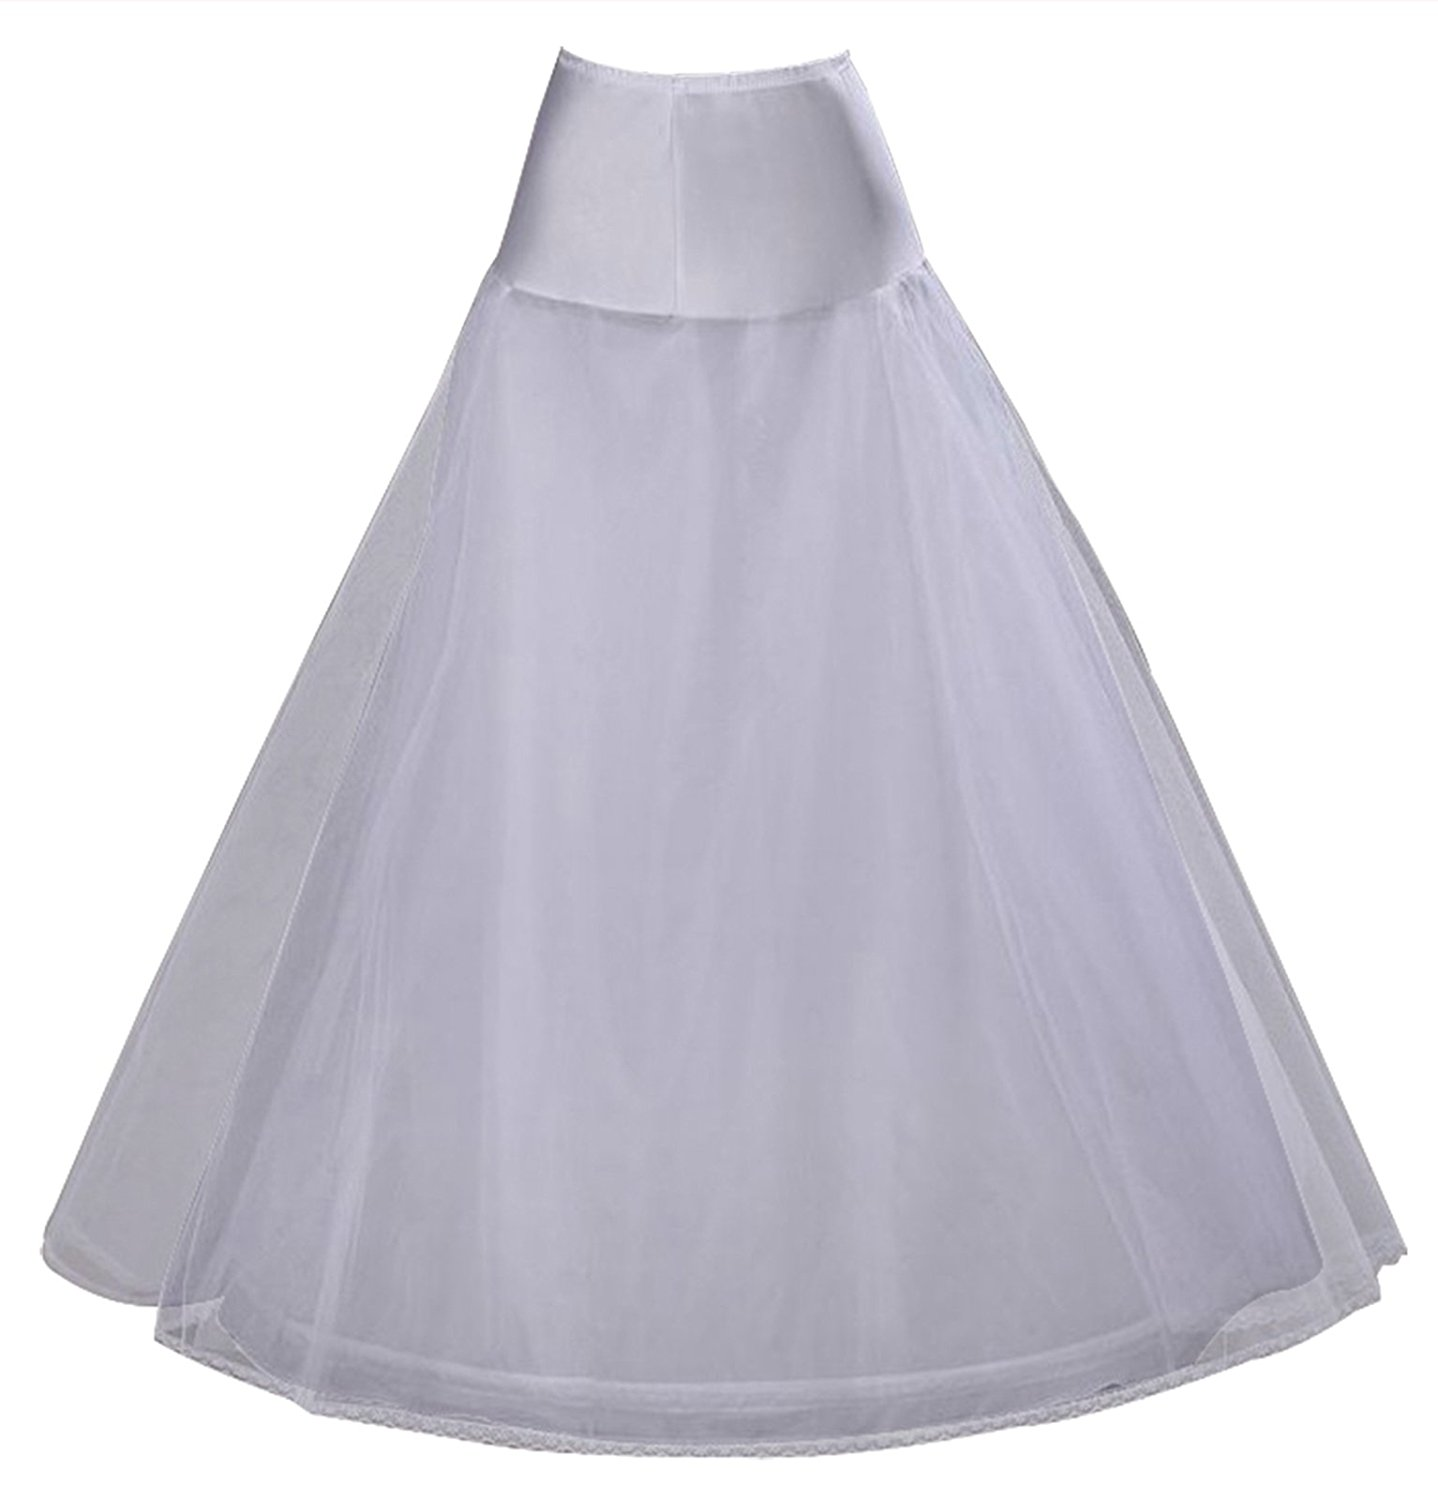 V.C.Formark Hoops Skirt Lace Bridal Petticoat White Crinoline Wedding Dresses Underskirt